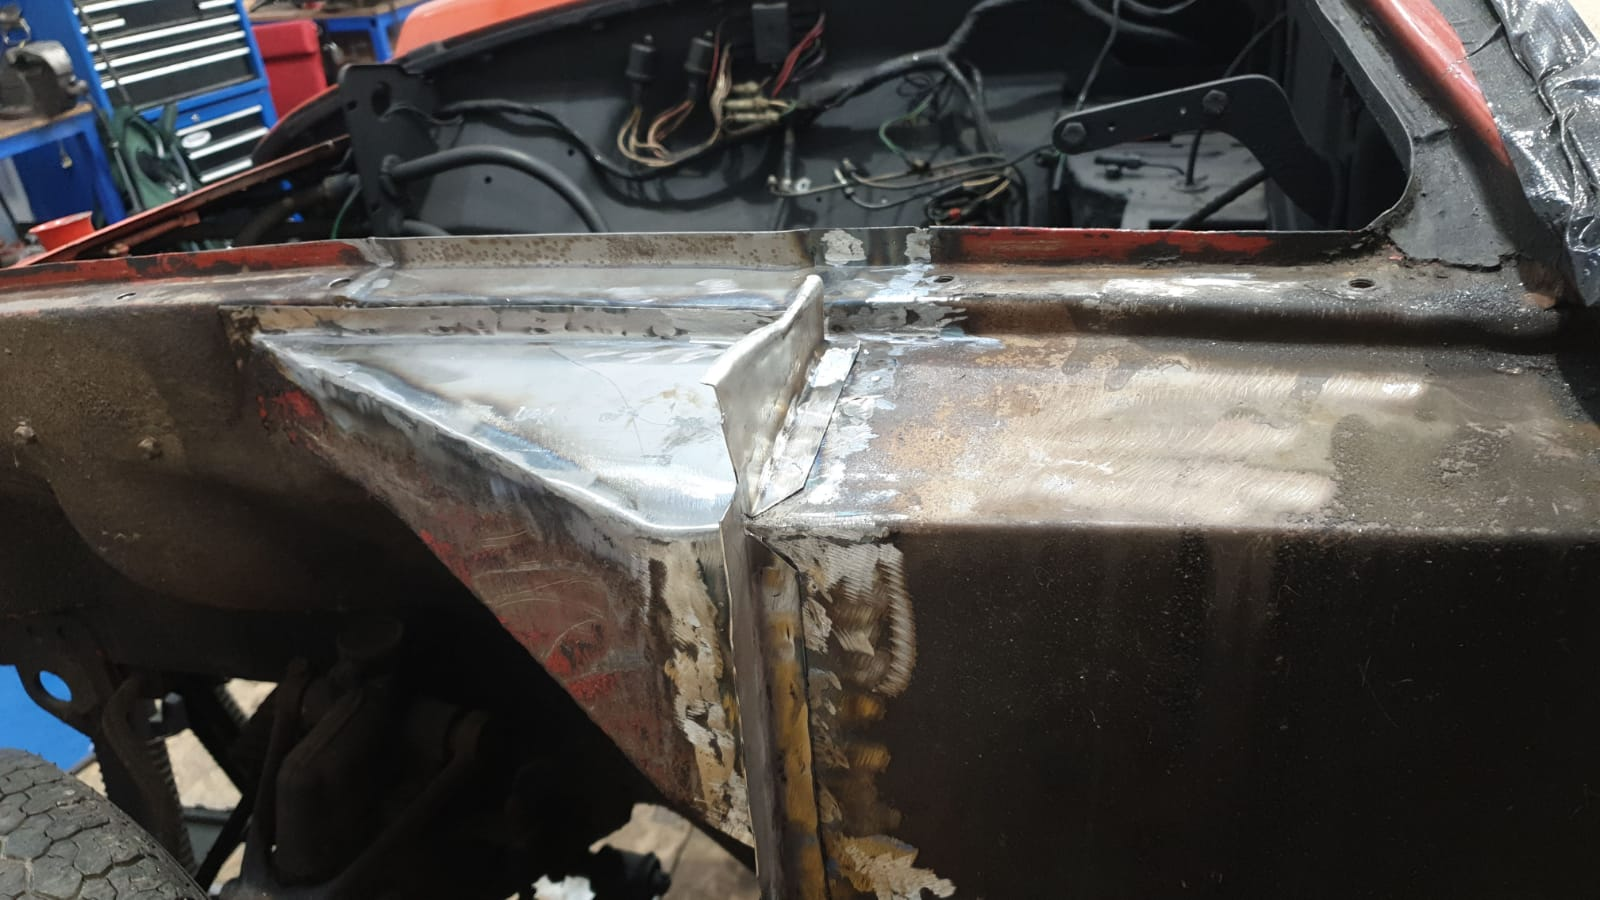 More repairs to the body of our 1977 MG BGT